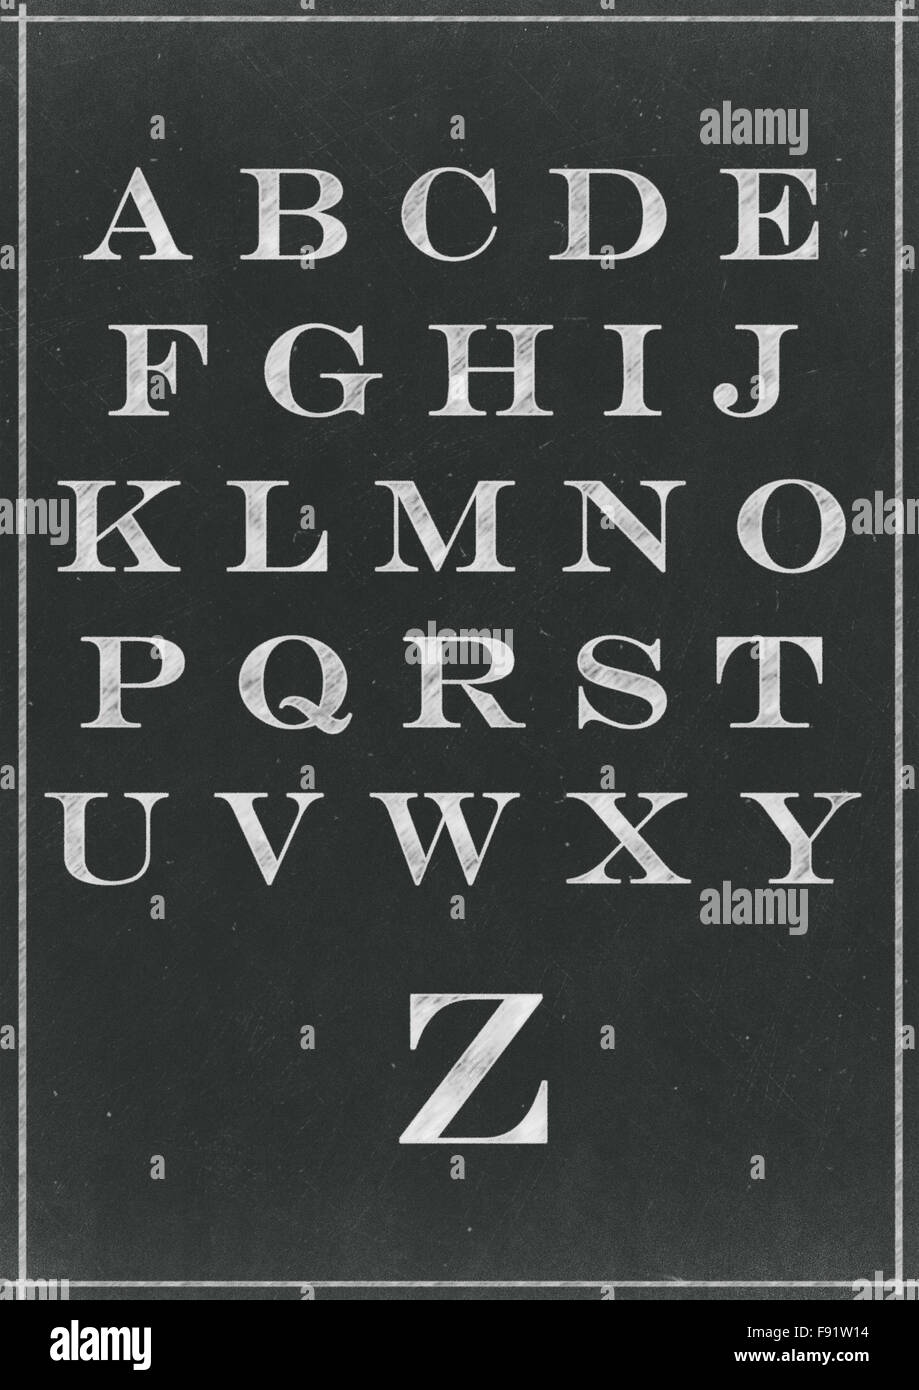 Chalk sketched alphabet characters on a blackboard background - Stock Image